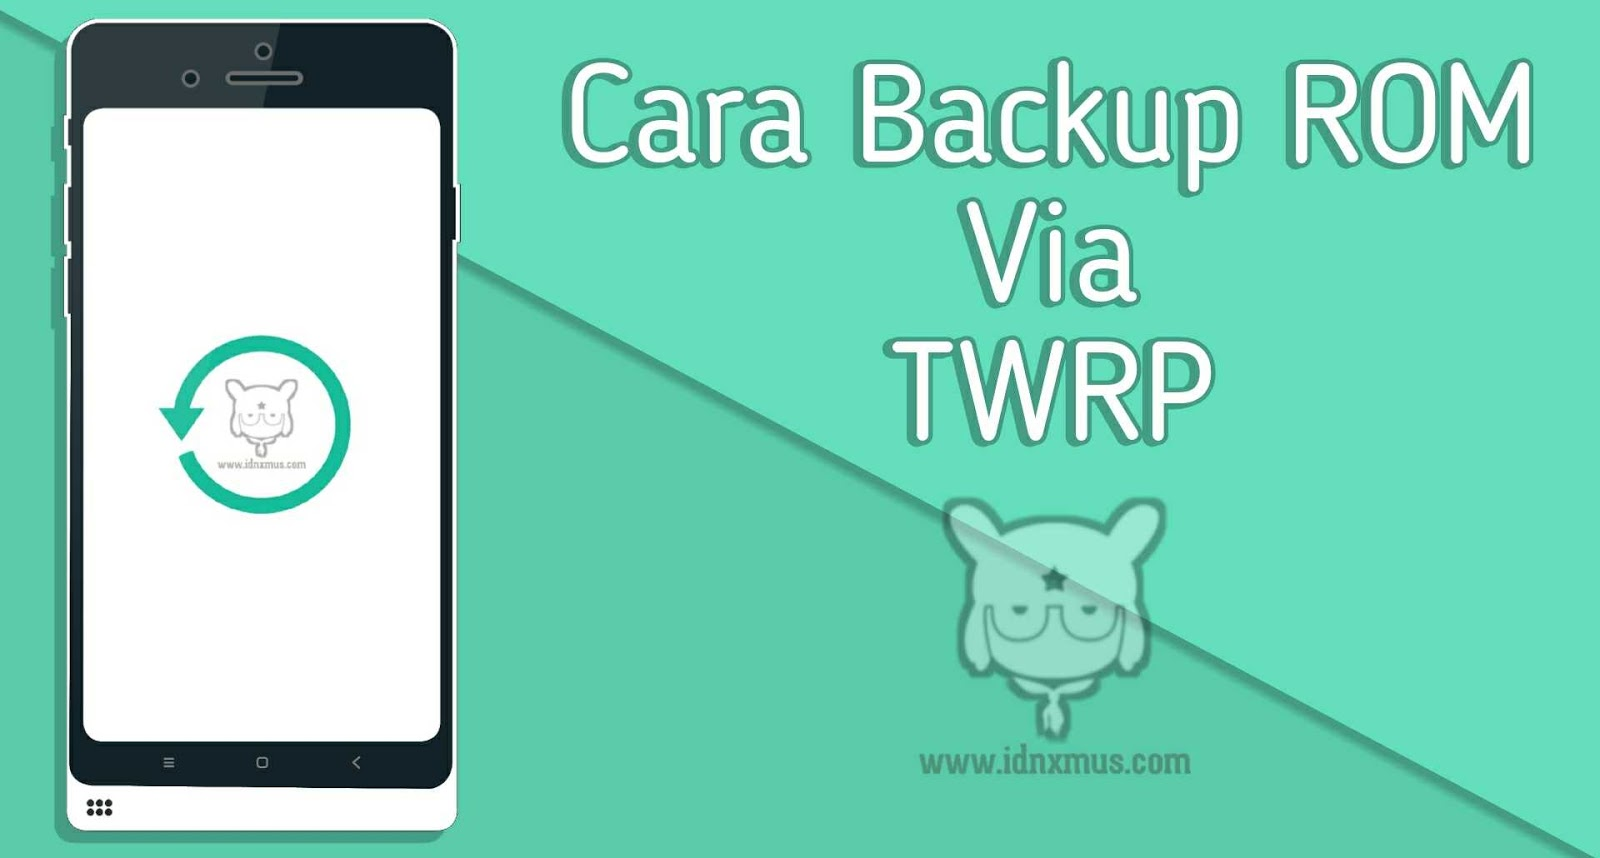 Cara Backup ROM Xiaomi Via TWRP